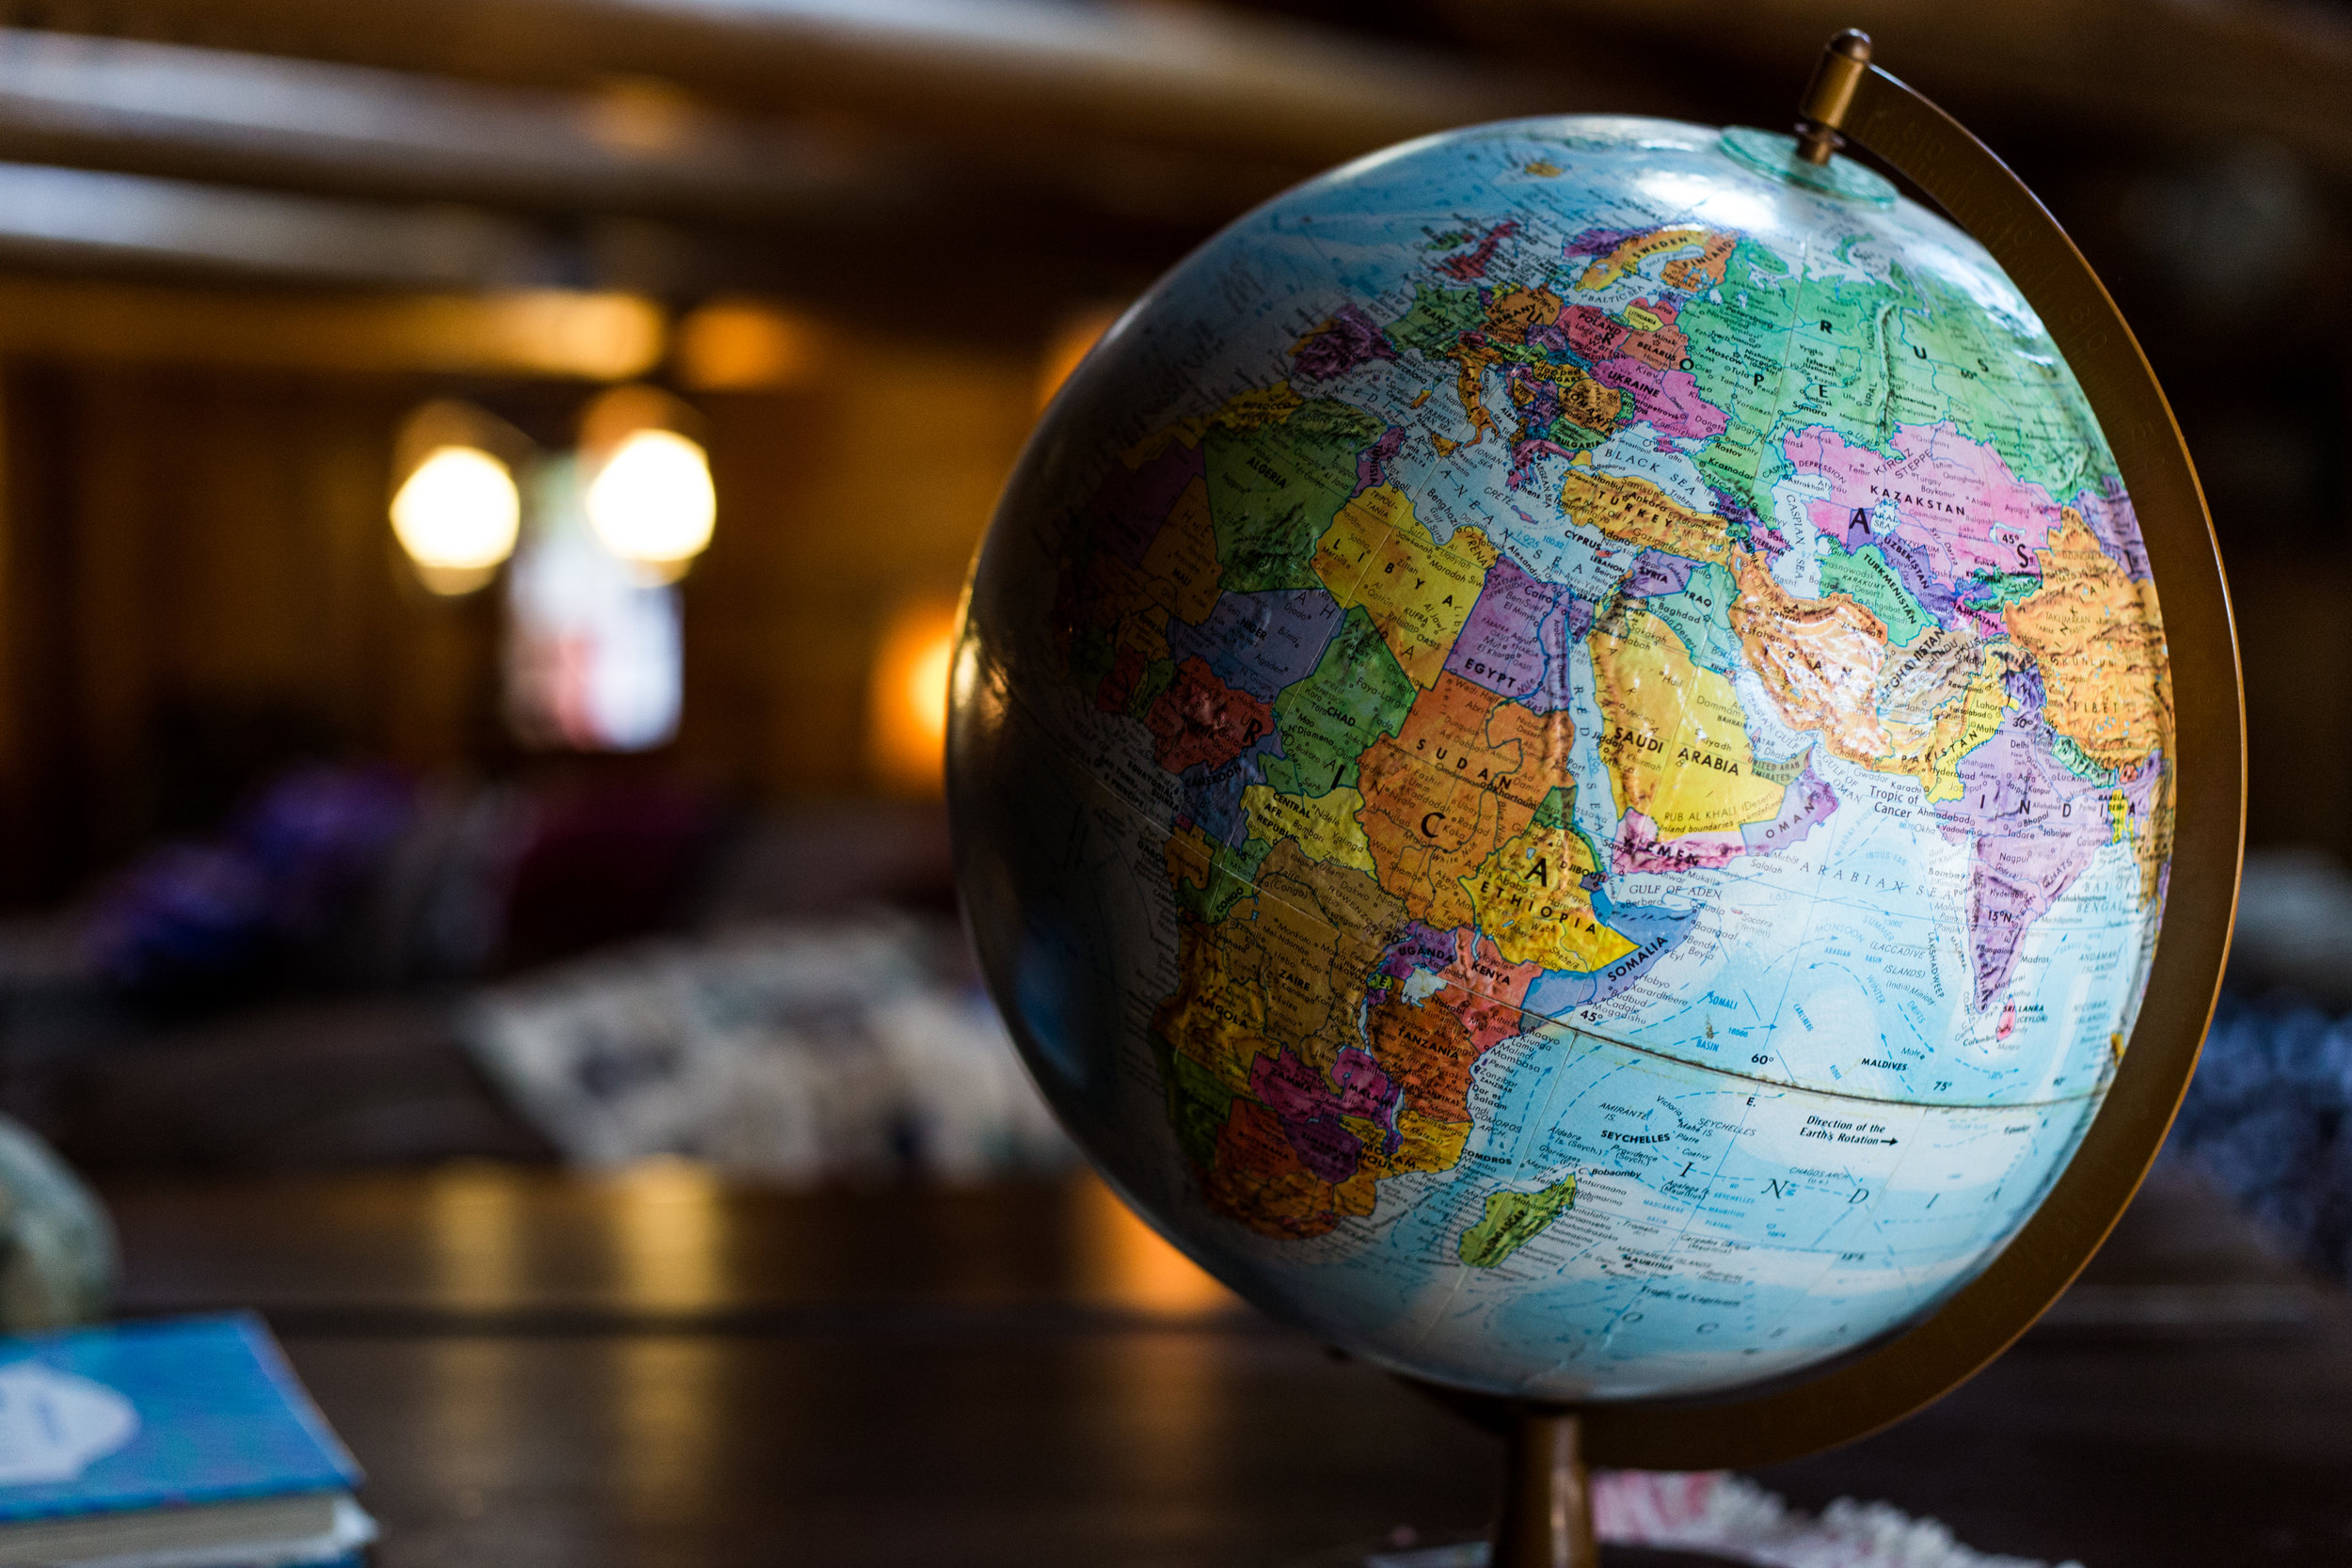 With the International Division's valuable resources, US Together can expand our mission abroad and reach a much larger audience. -